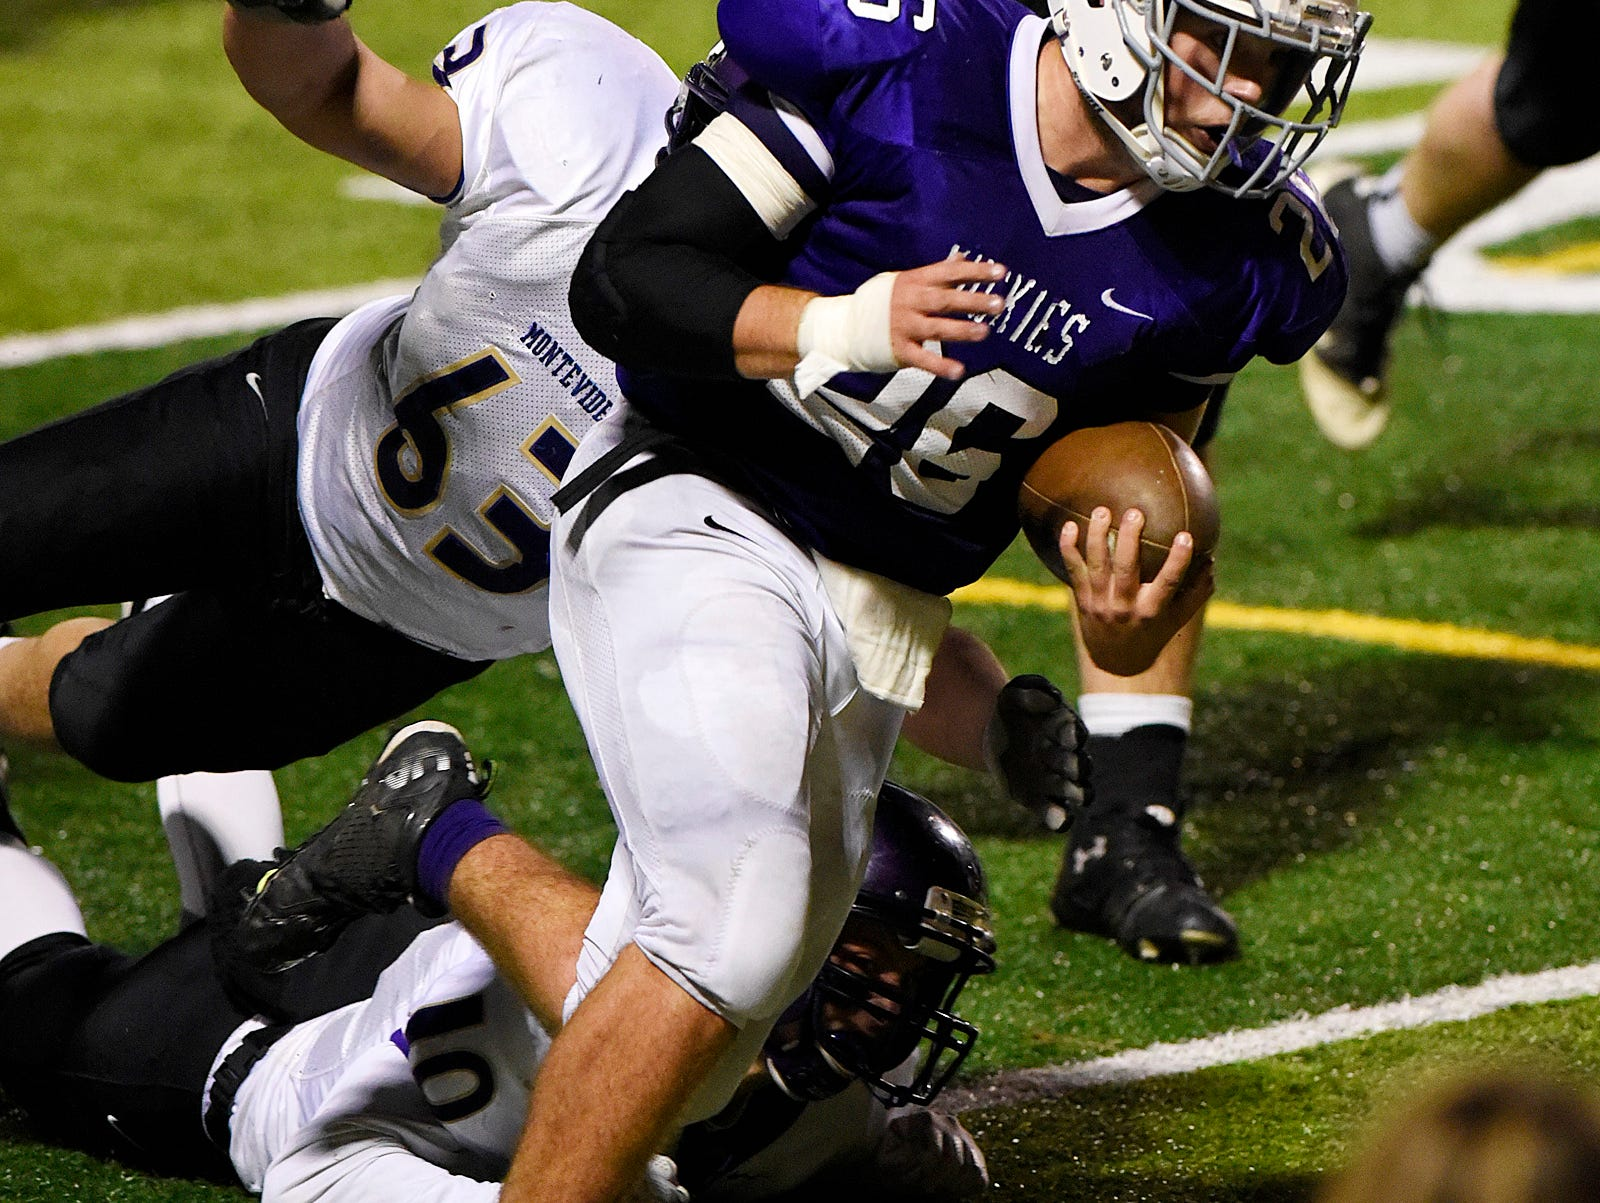 Albany's Will Kleinschnidt takes the ball to the five yard line for the team to score on the next series against Montevideo during the first half Saturday, Oct. 24 at Husky Stadium.